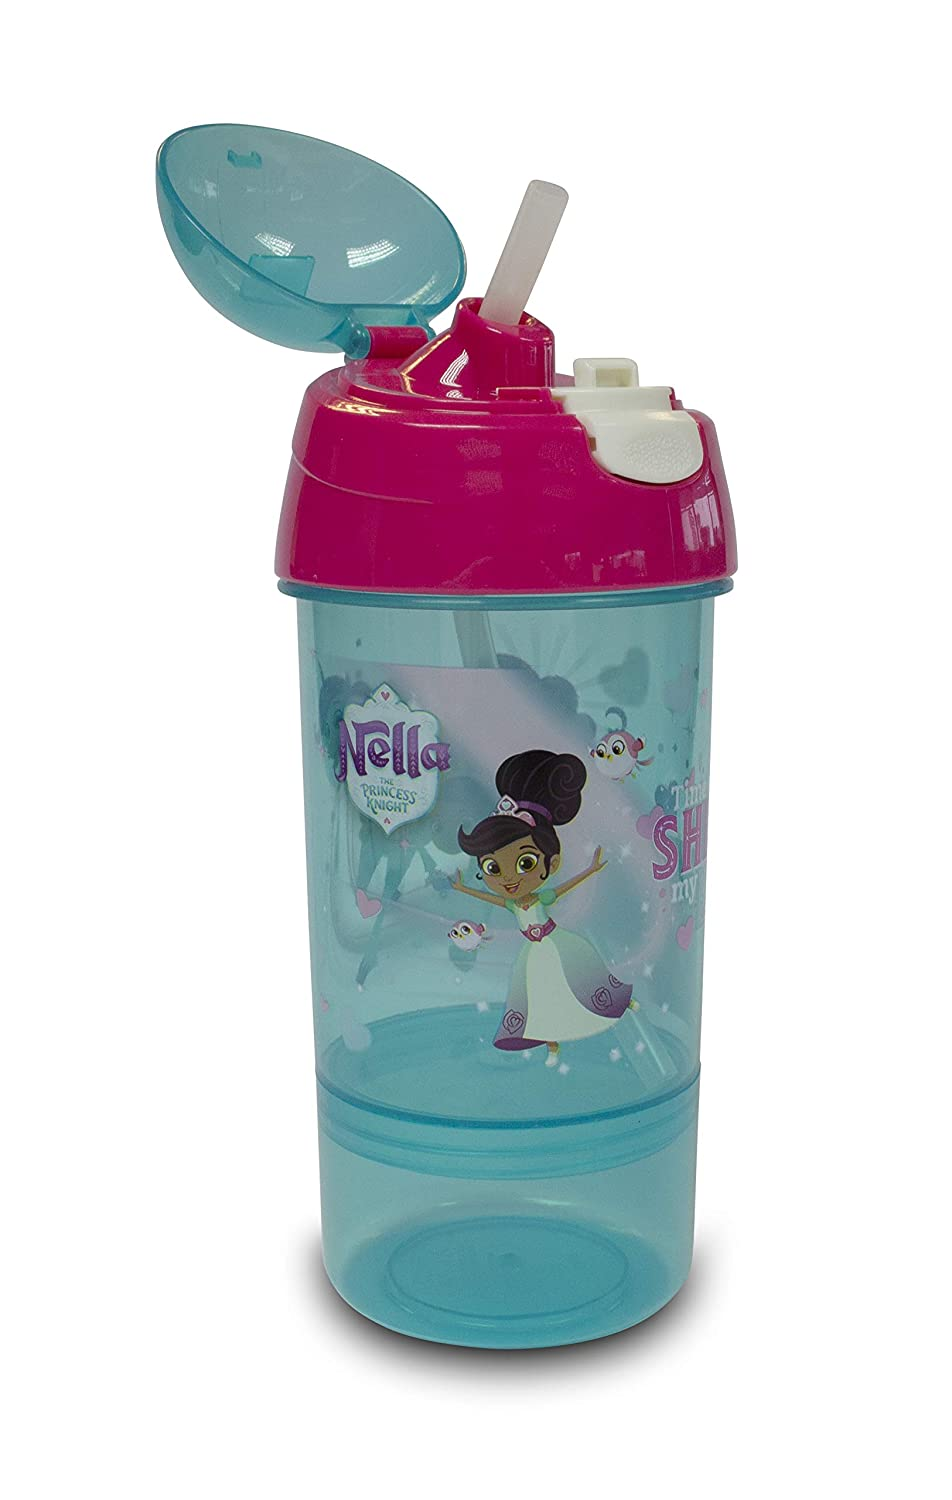 Green and Pink Nella the Princess Knight 83325AMA Lunch Bag